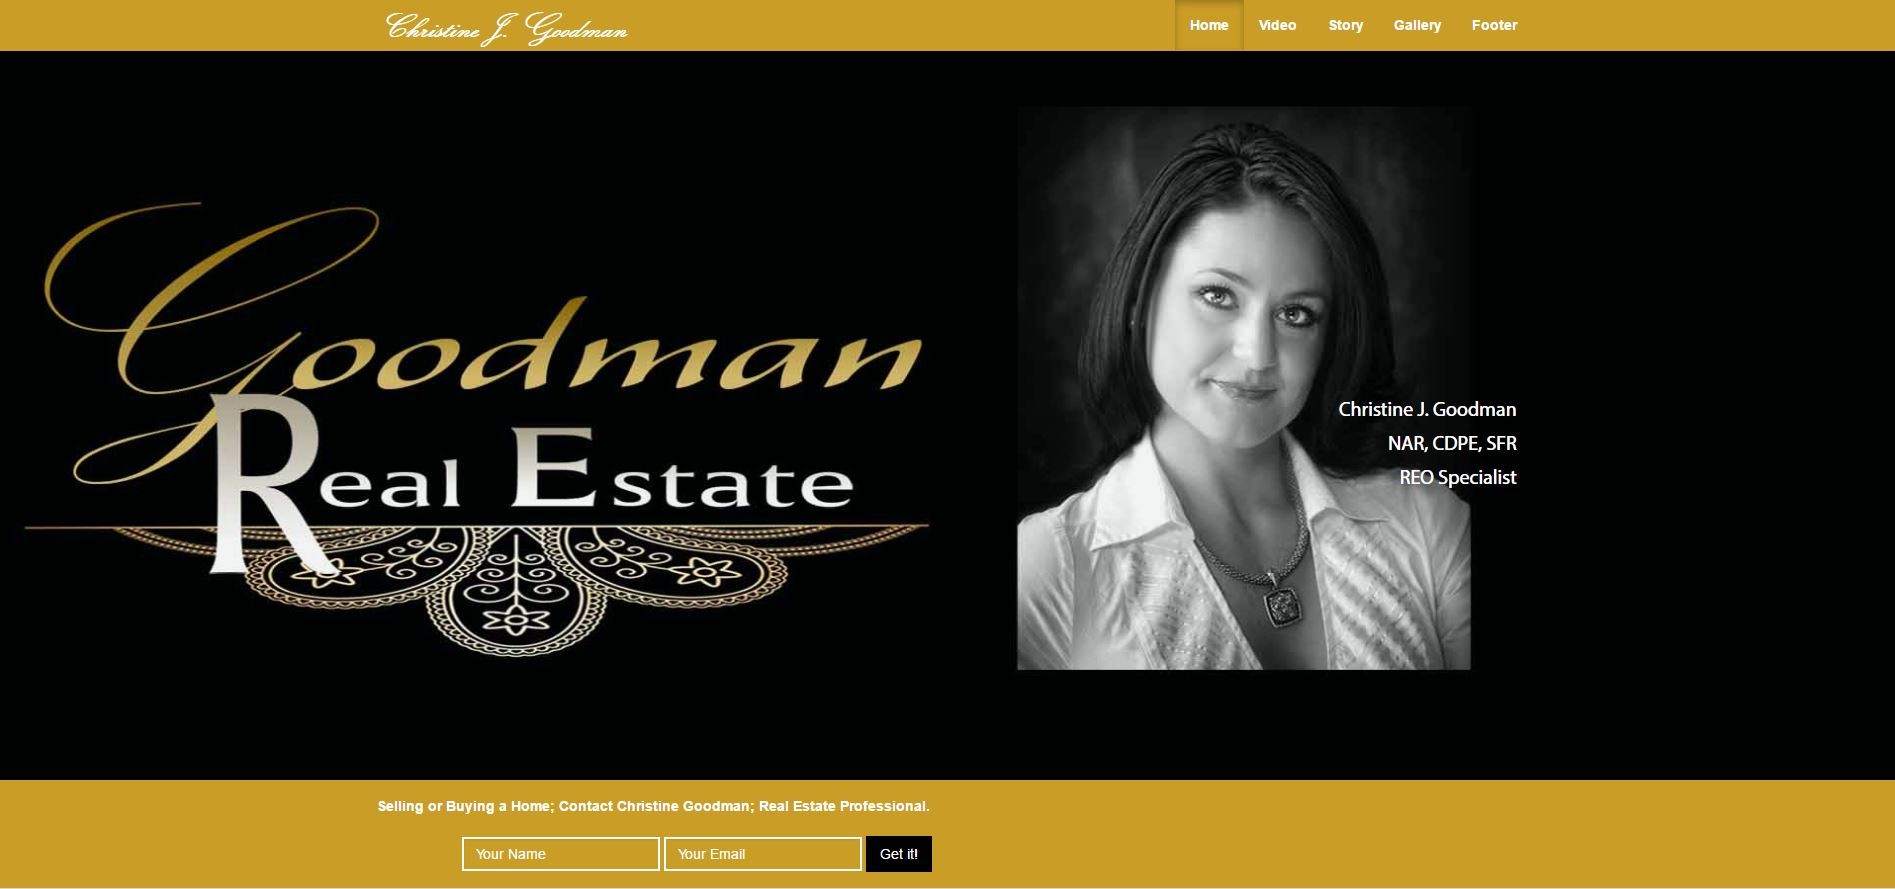 Website Design - Real Estate Broker